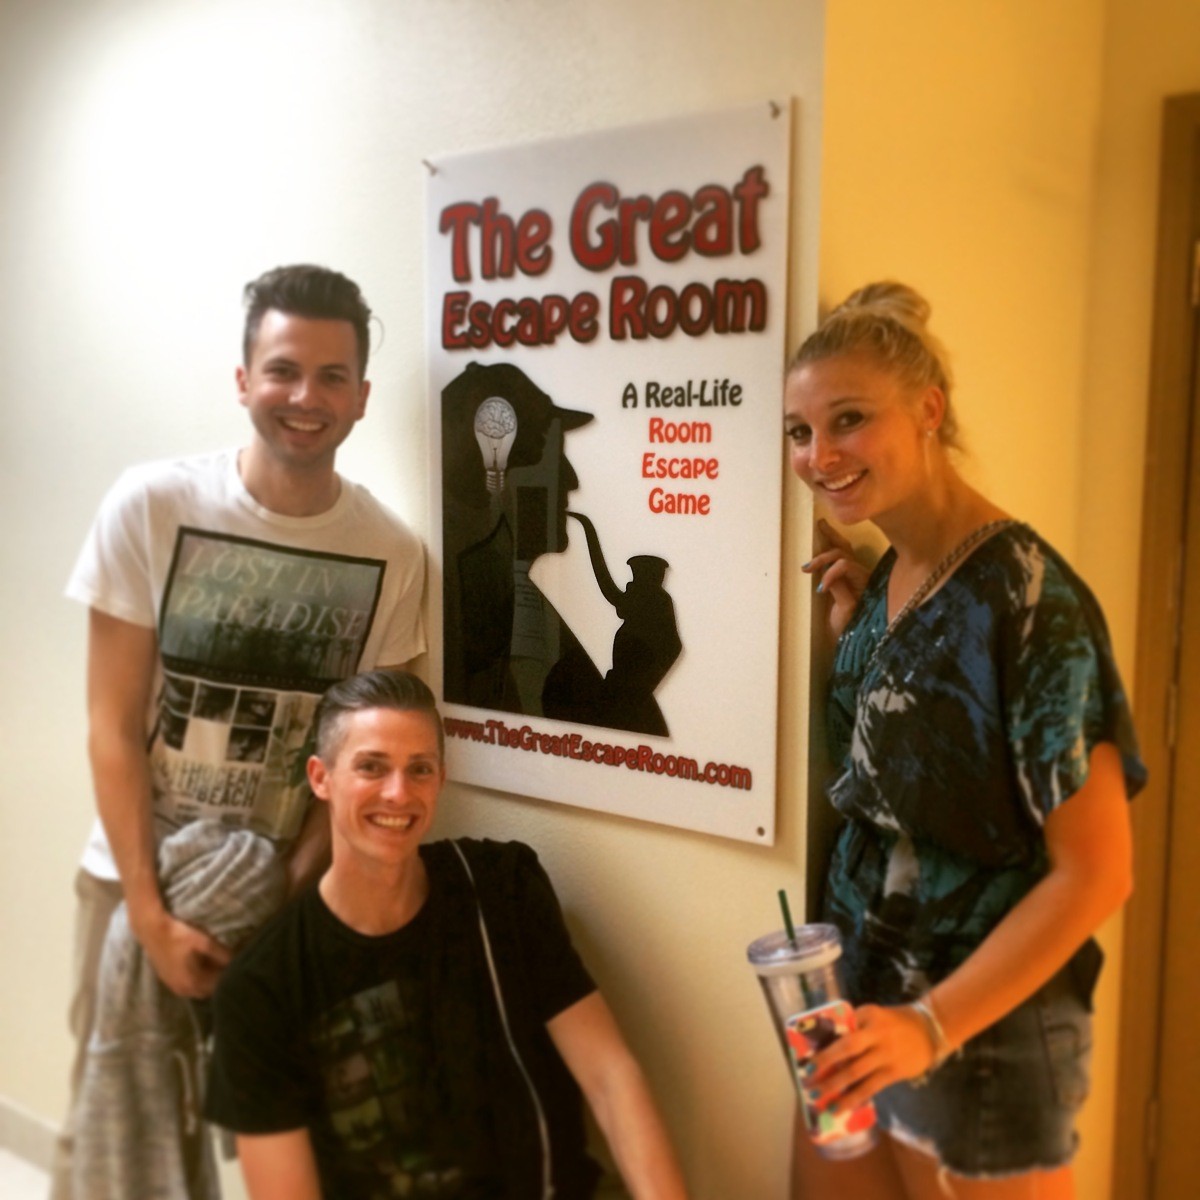 Tampa The Great Escape Room